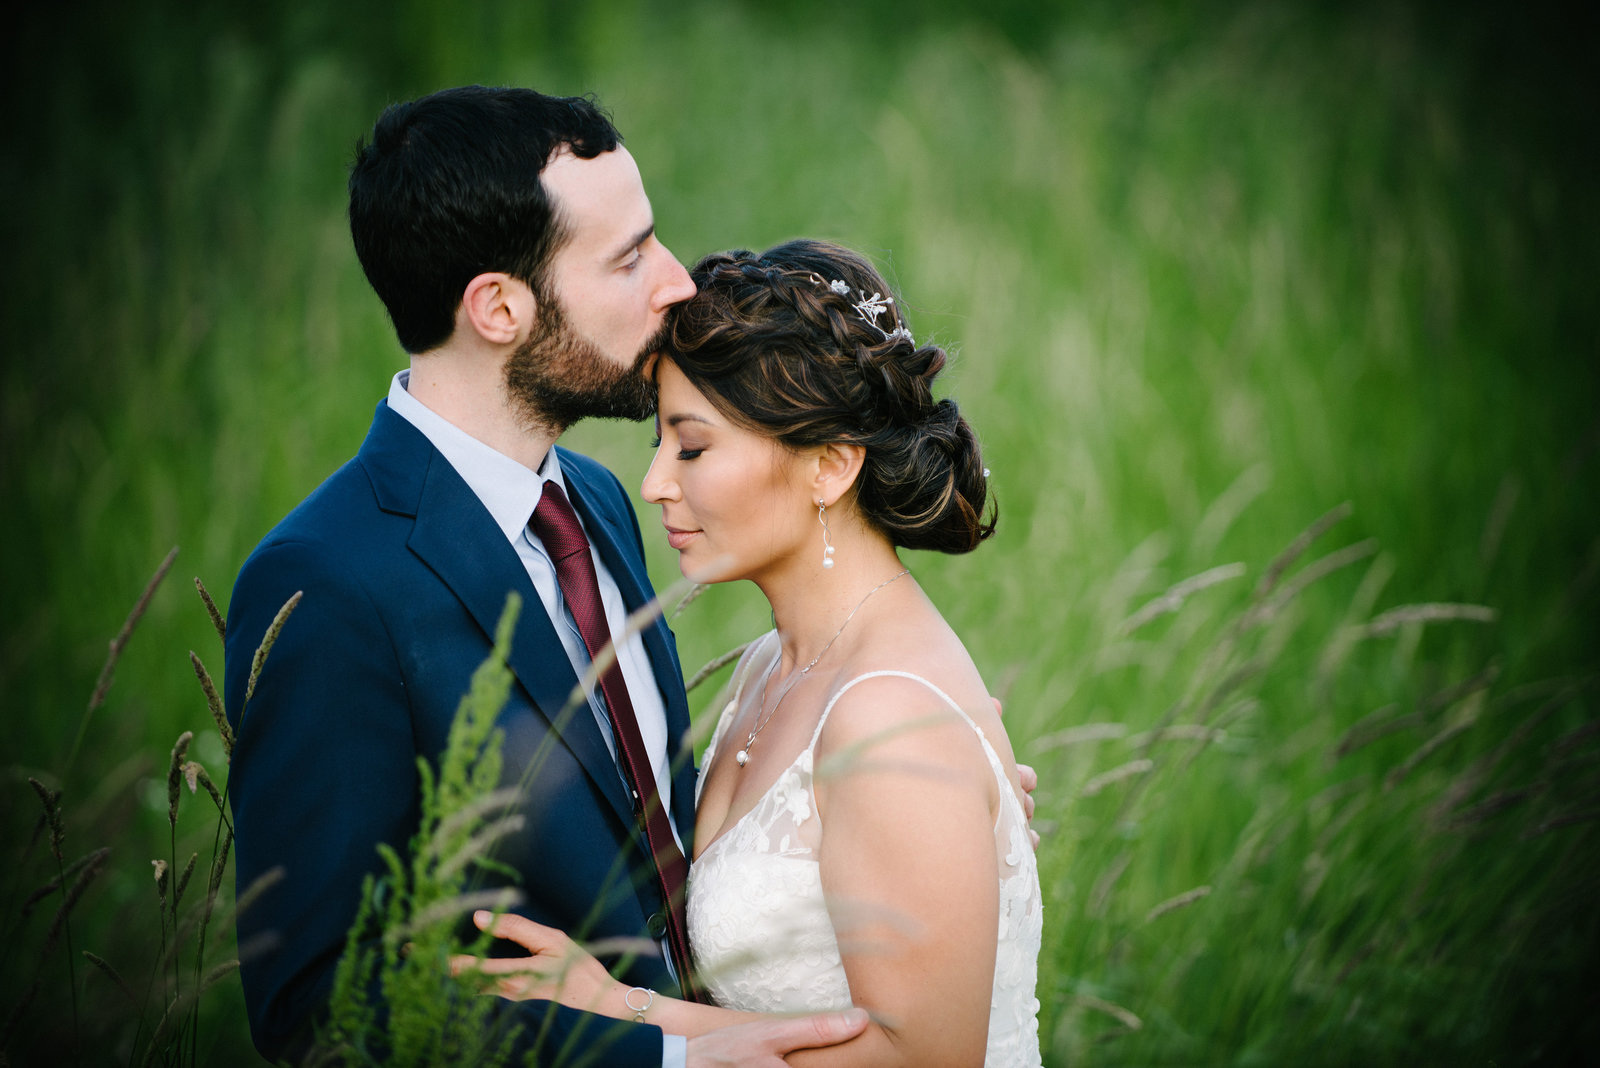 Romantic moment between bride and groom in a field of green